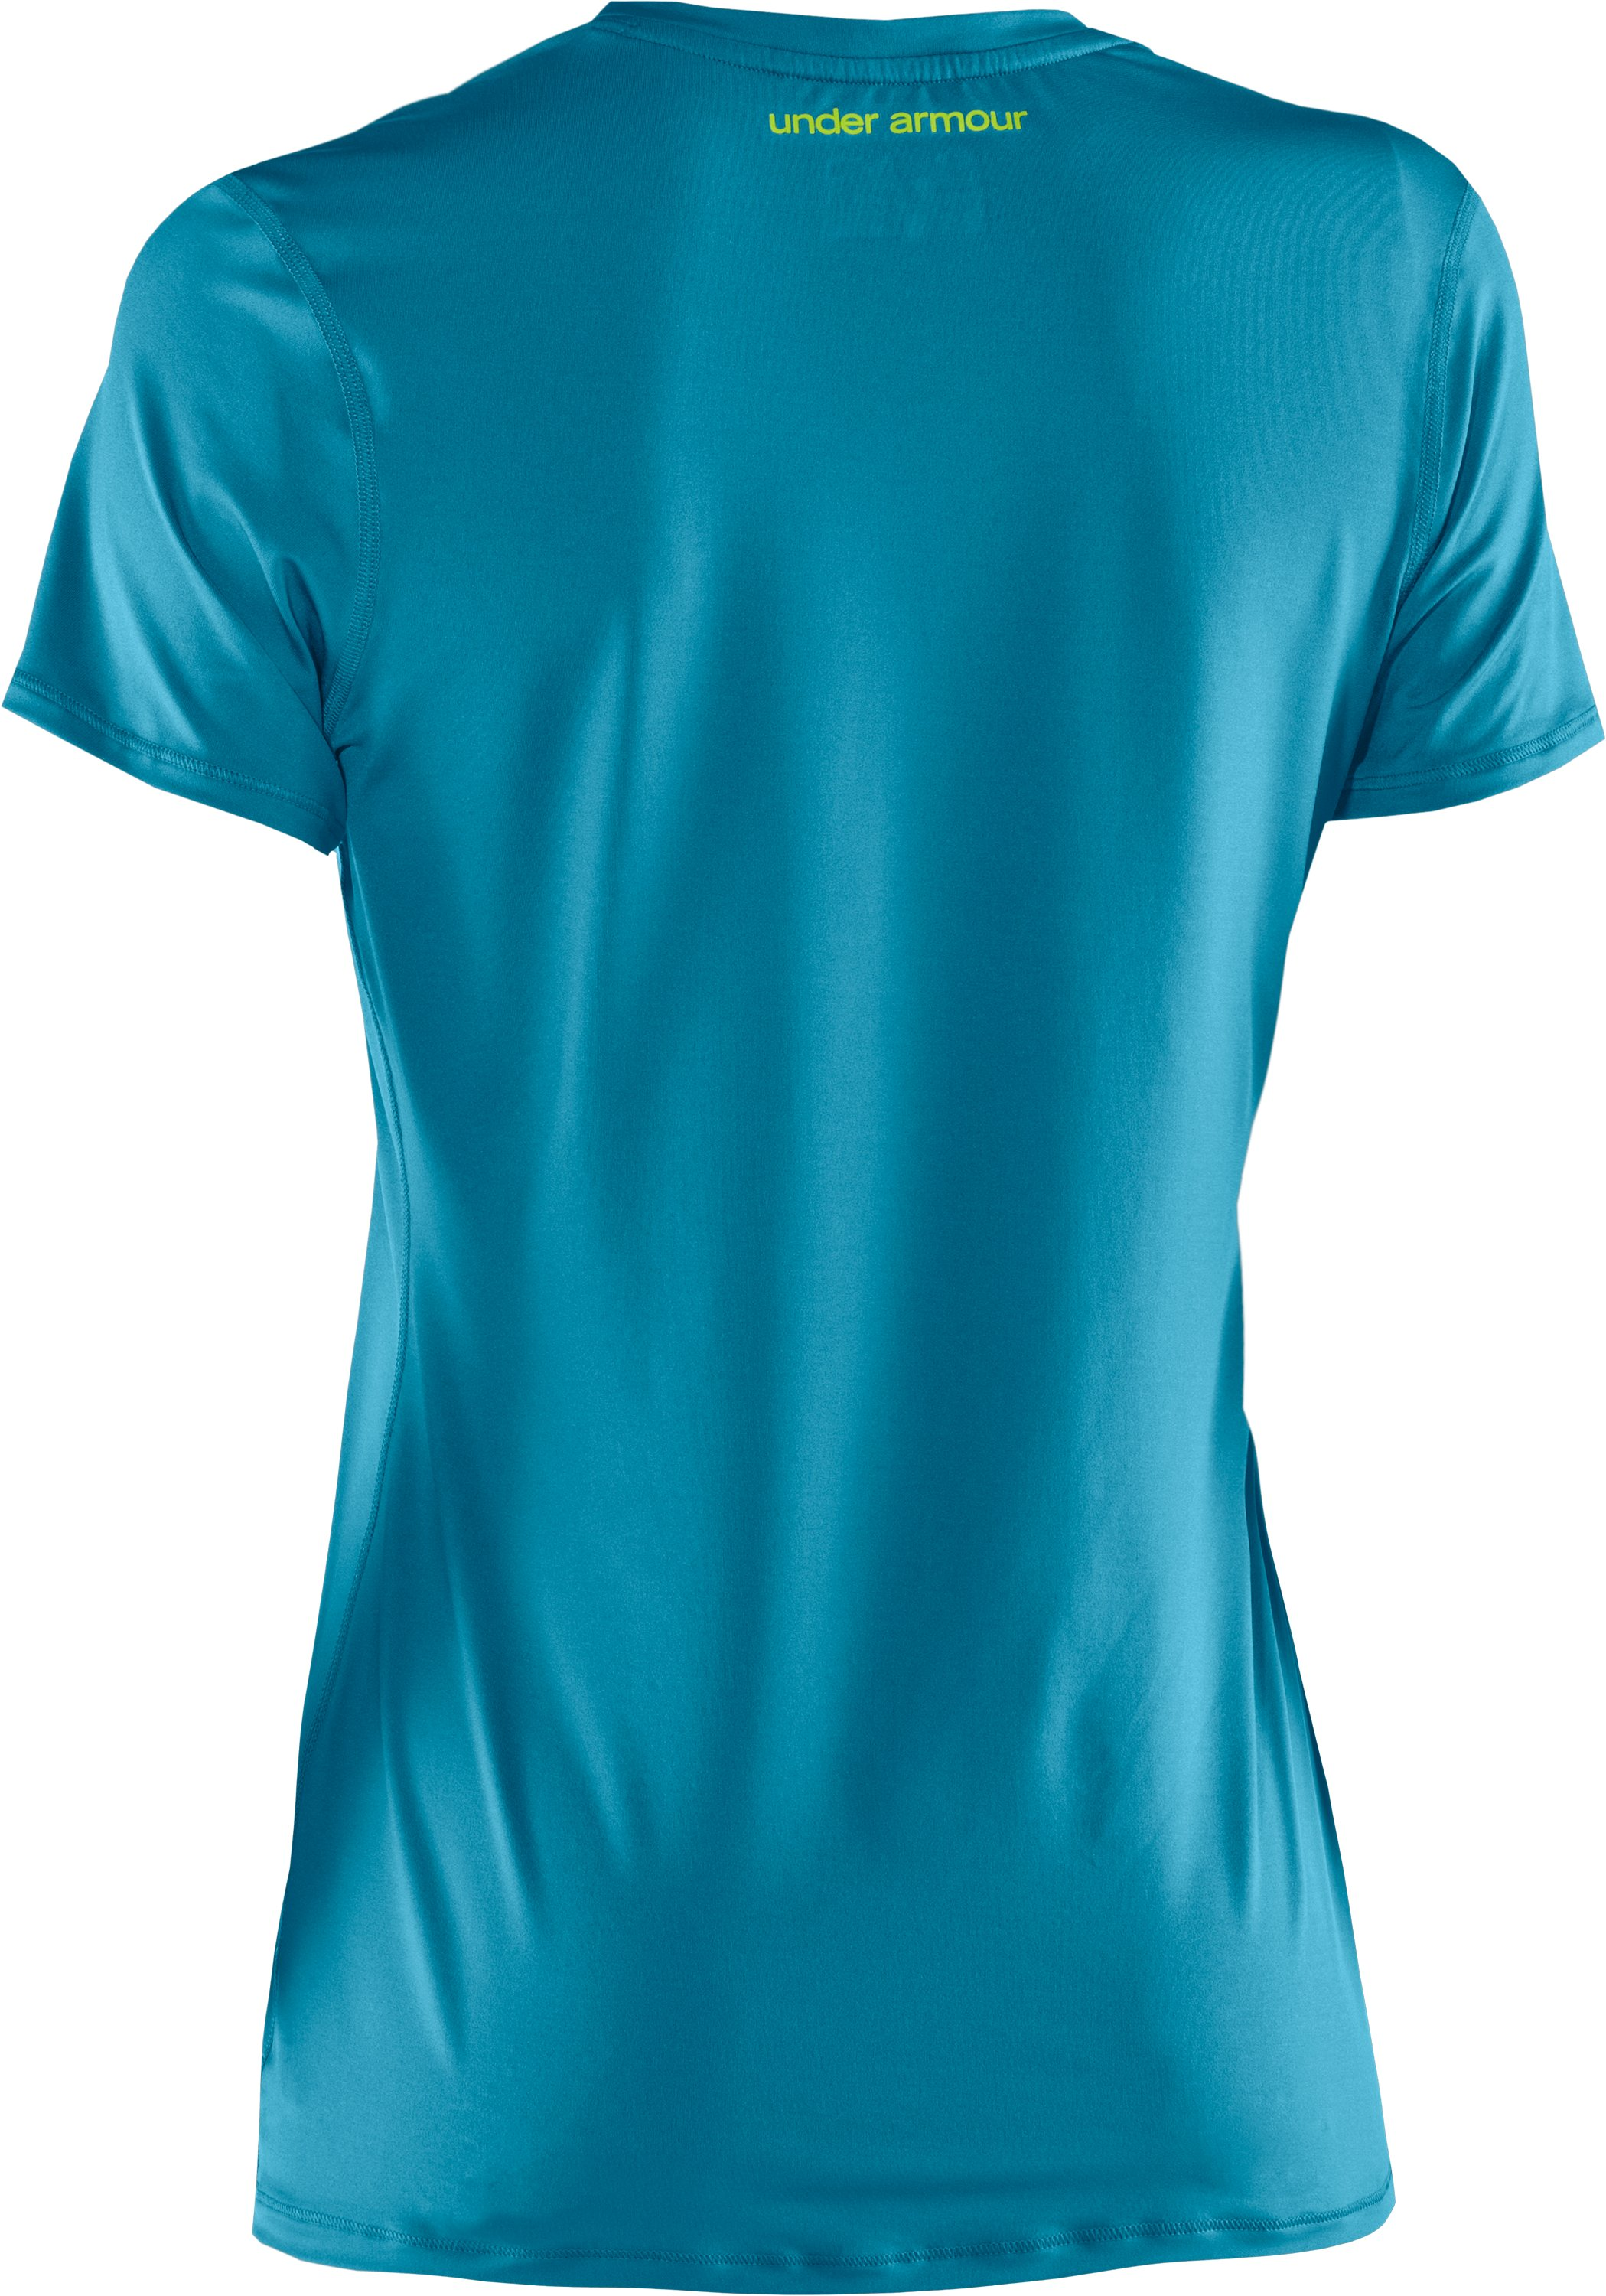 Women's HeatGear® Sonic Short Sleeve, Break,